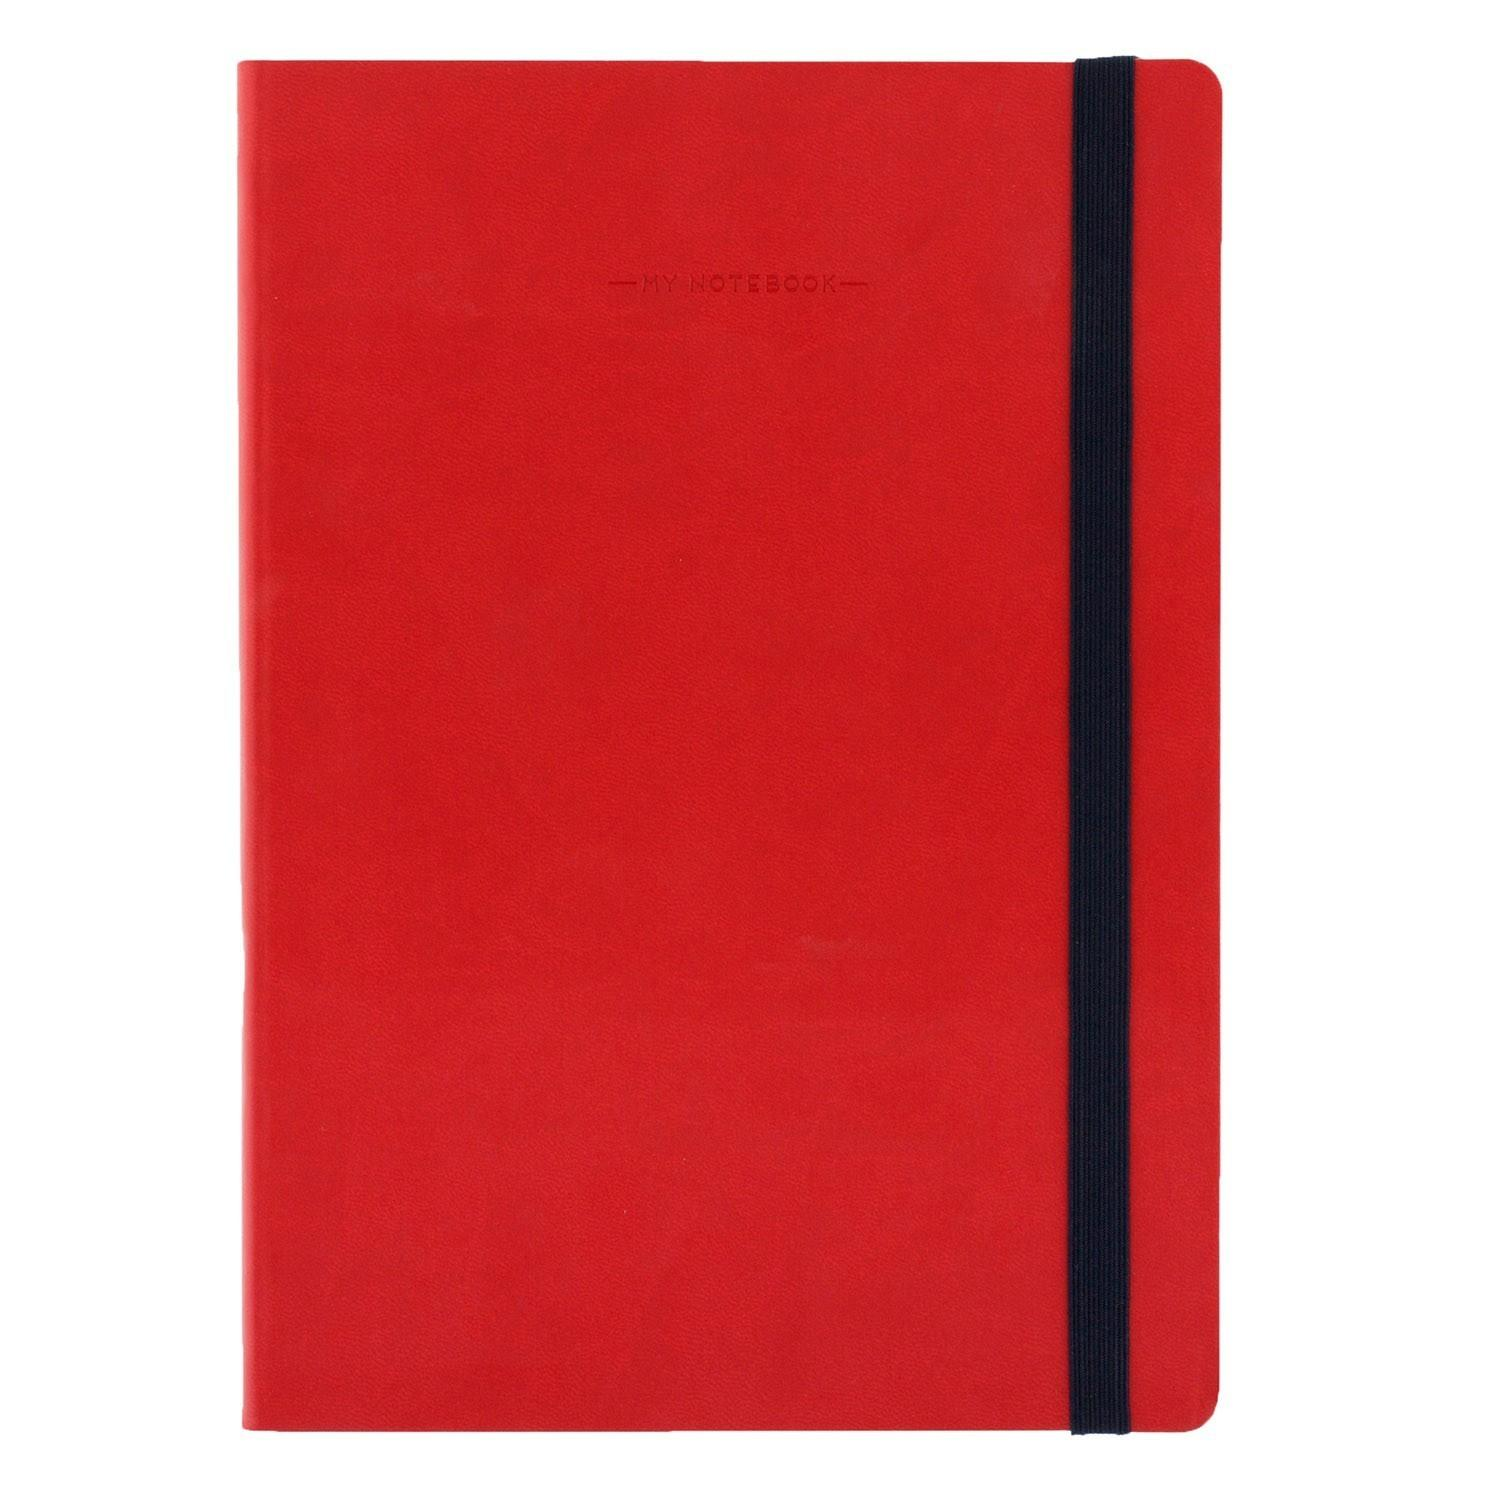 Notebook - Large - Unlined - Red